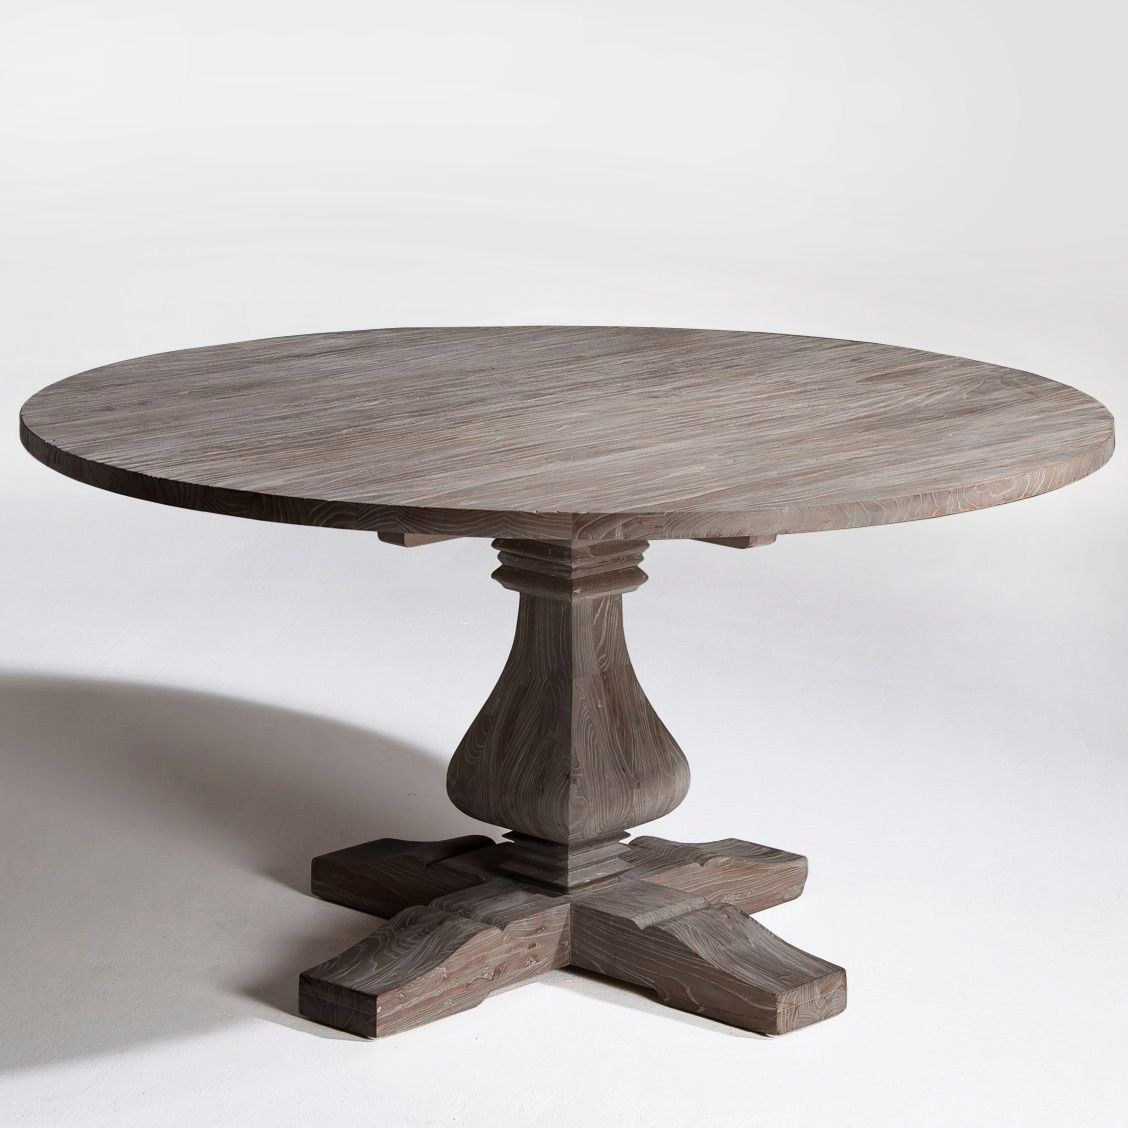 Charmant RD.150.1 Name : Reclaimed Teak Round Dining Table Dimension: